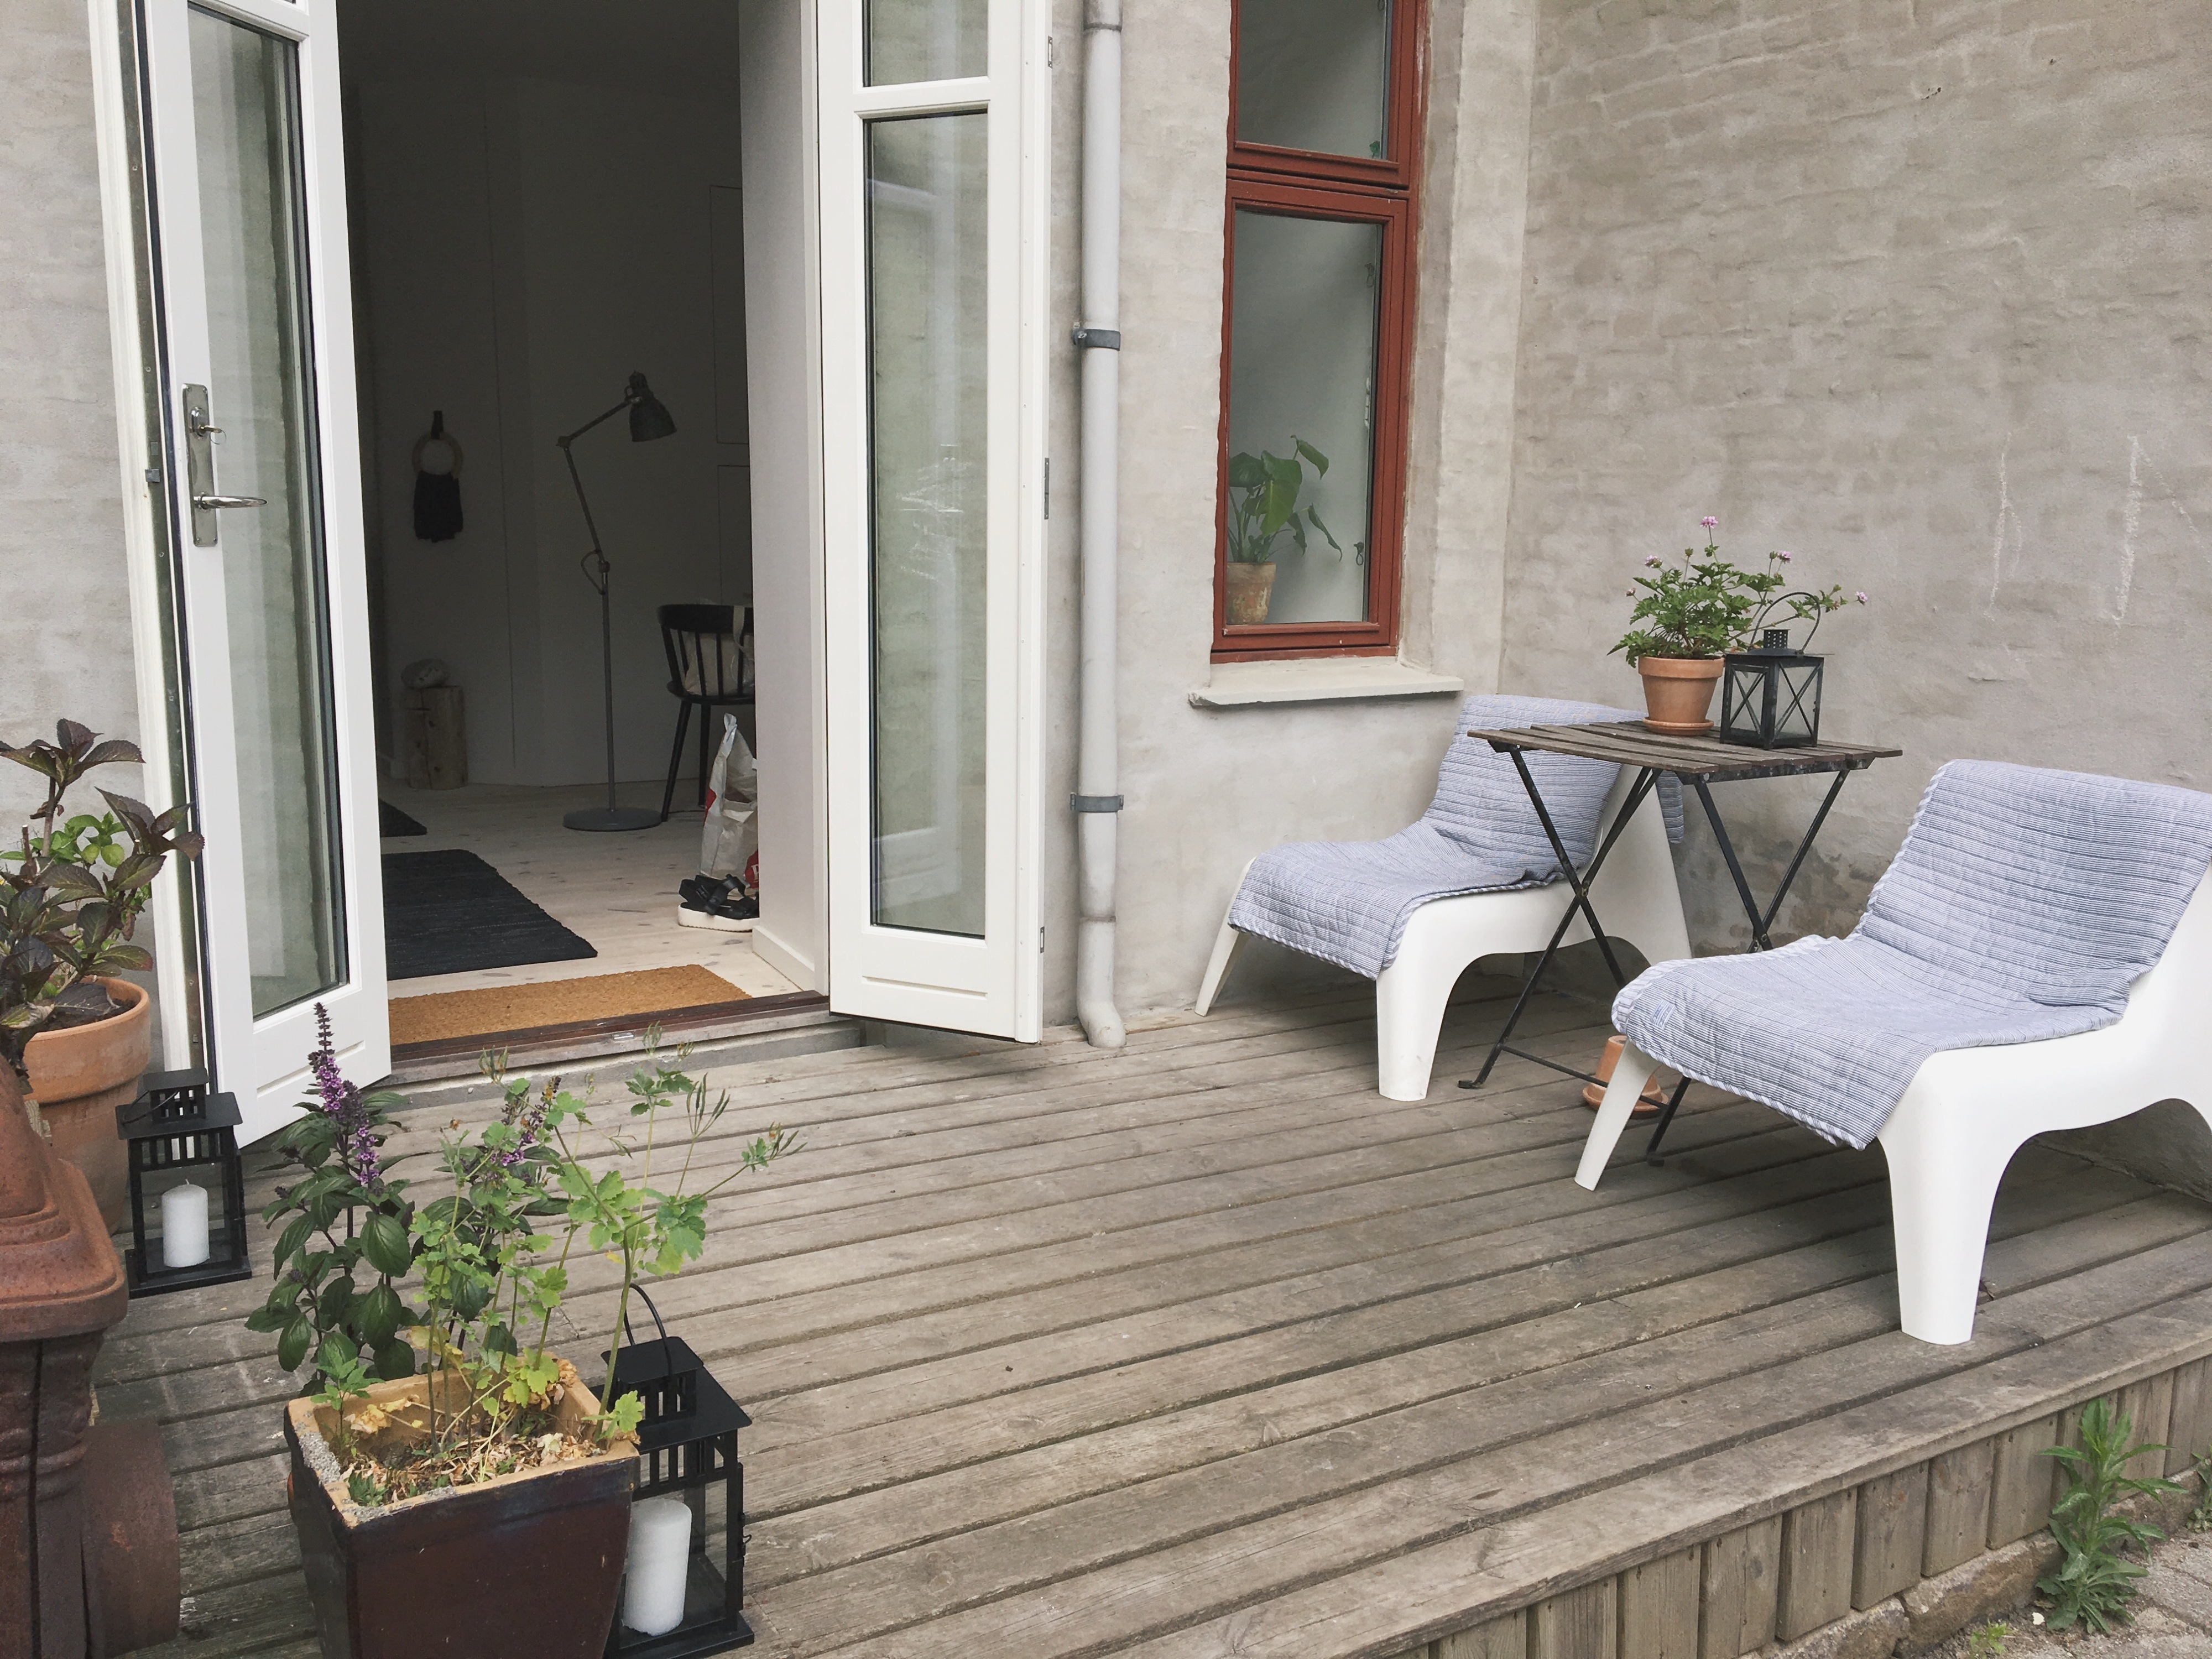 Denmark Listing – Beautiful Place with Terrace – Great Location! 4